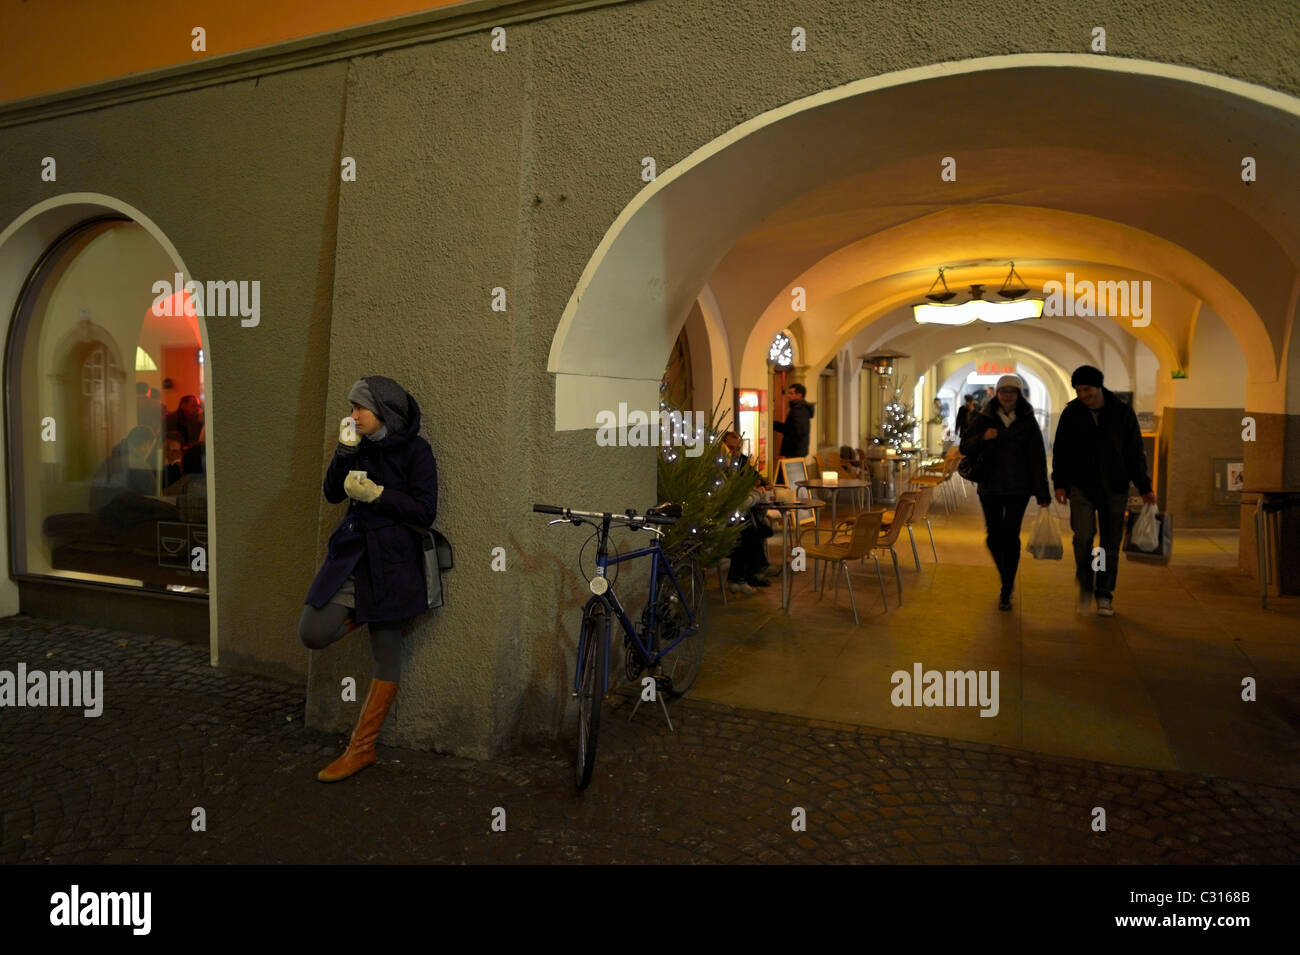 A young woman making a cell phone call outside of a restaurant, Feldkirch, Austria AT - Stock Image